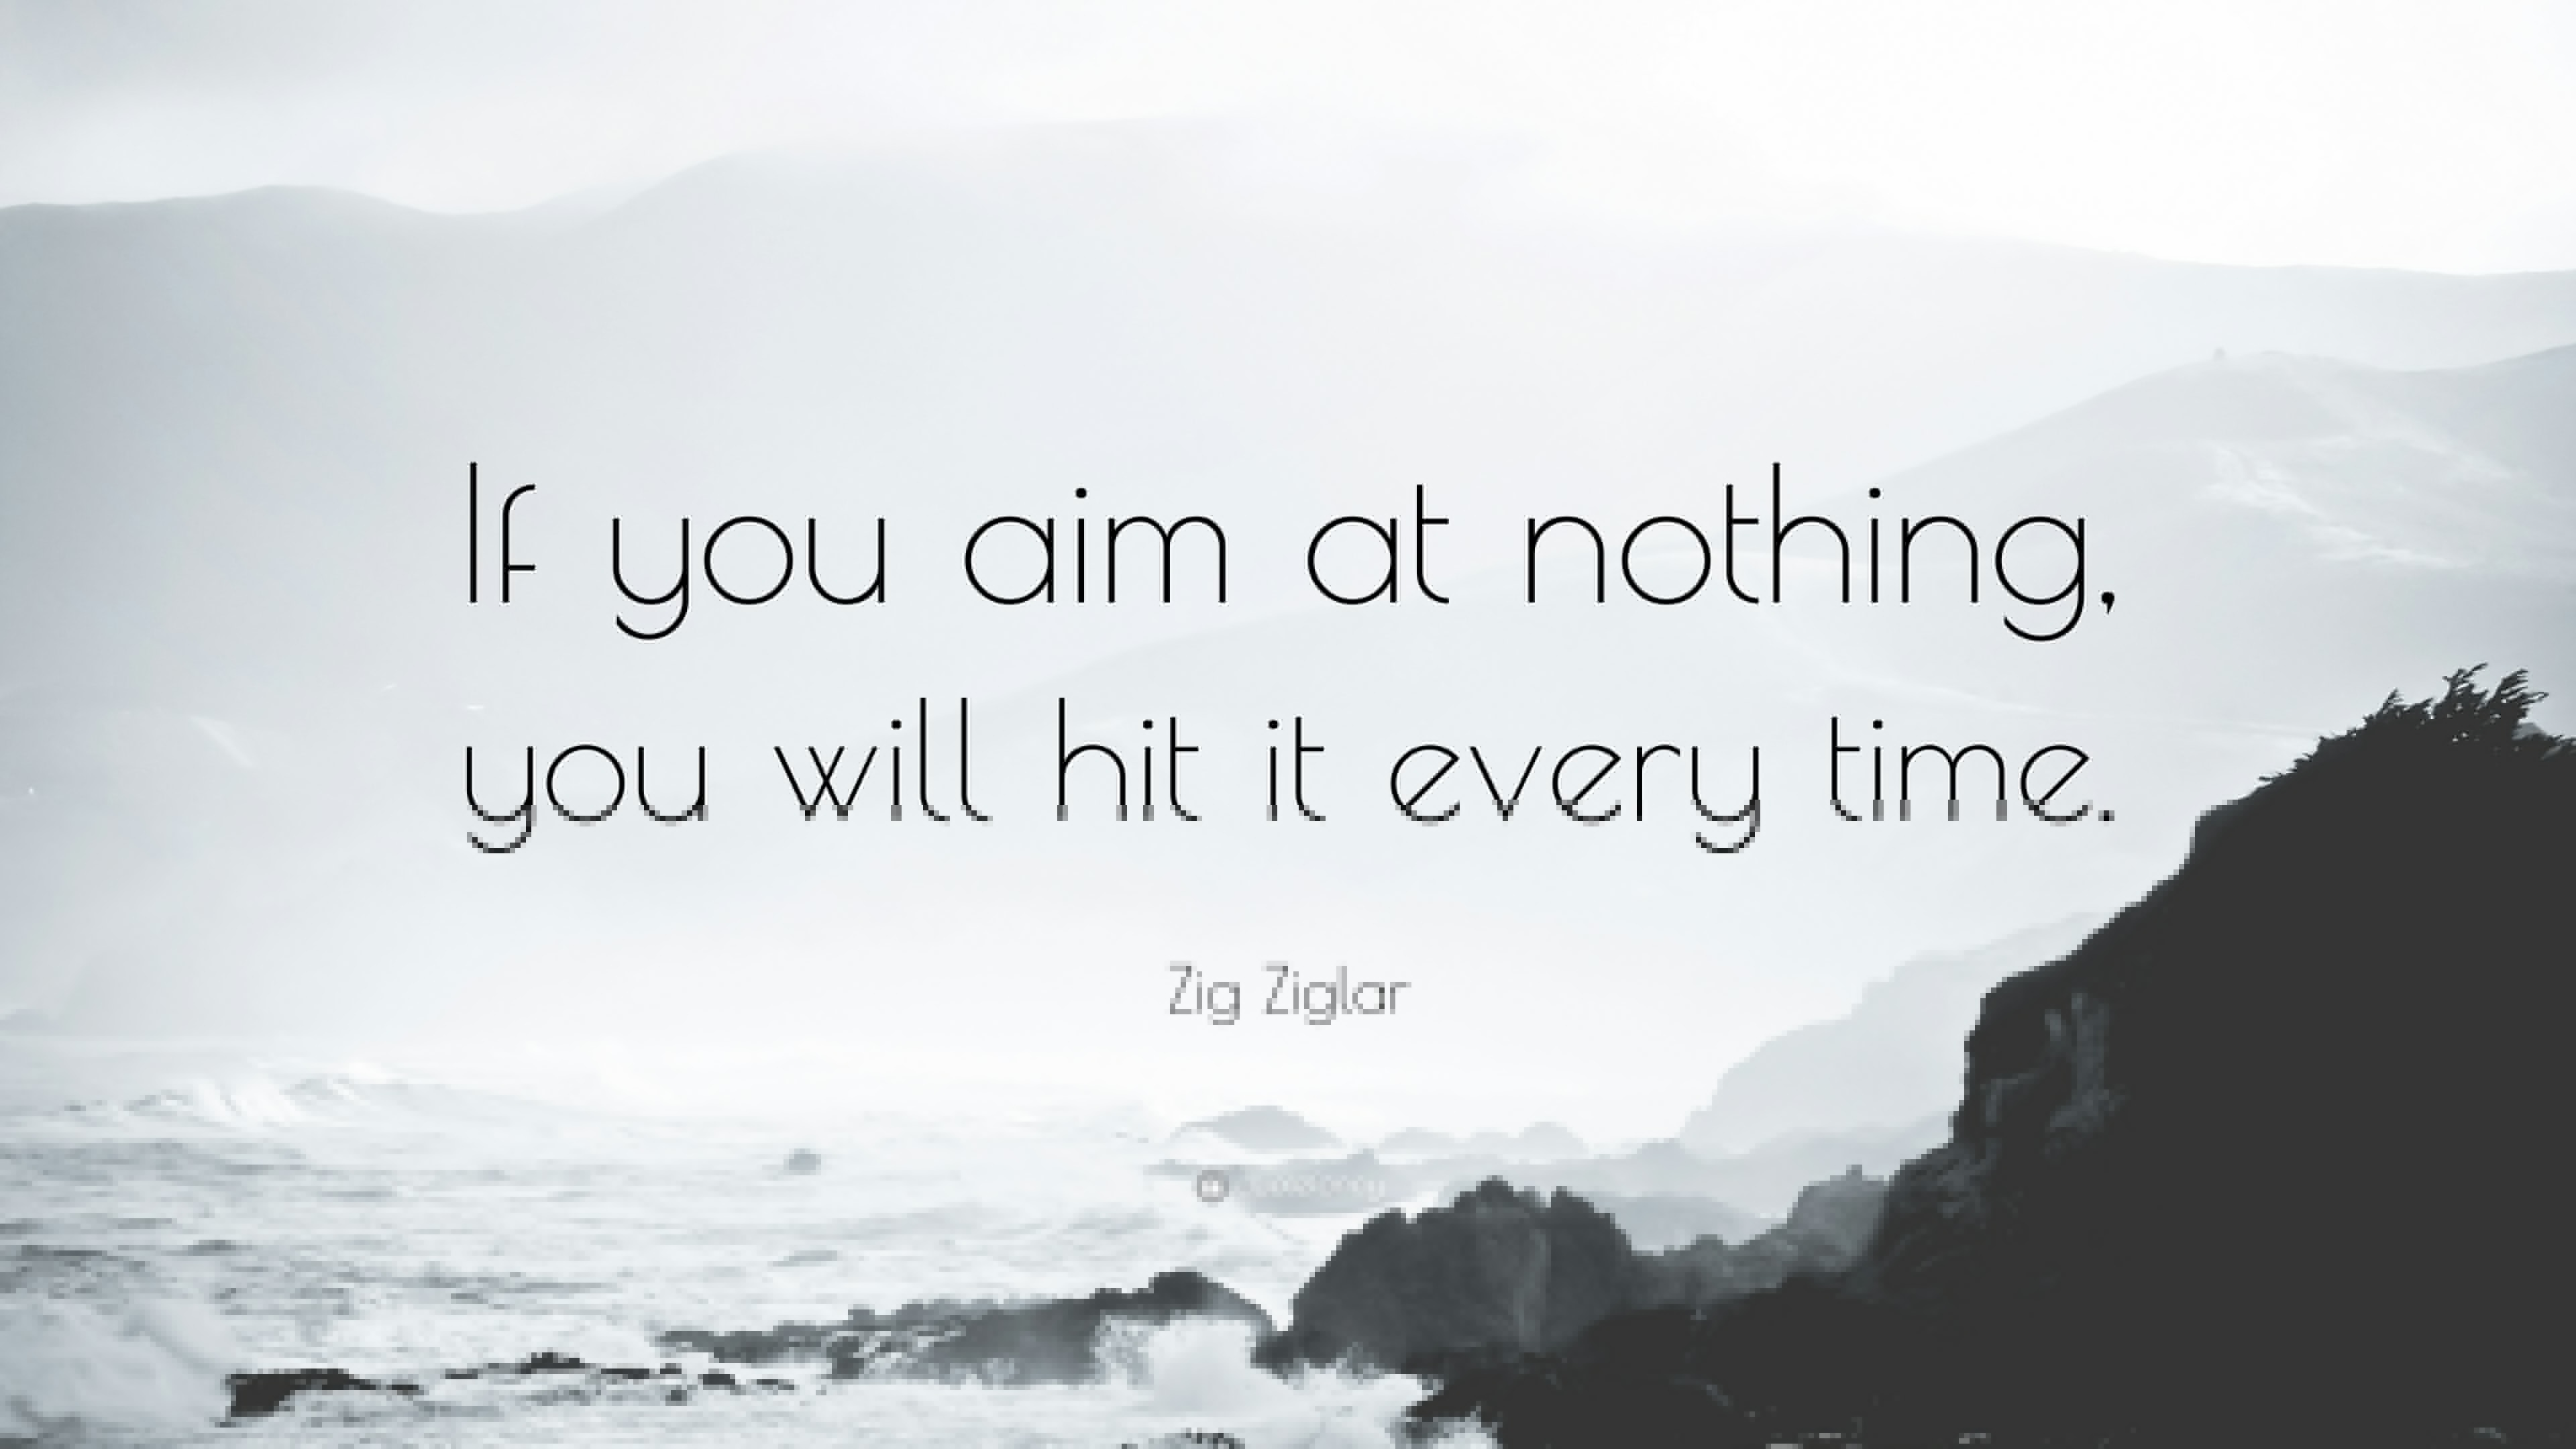 Zig Ziglar Quote If you aim at nothing you will hit it every time